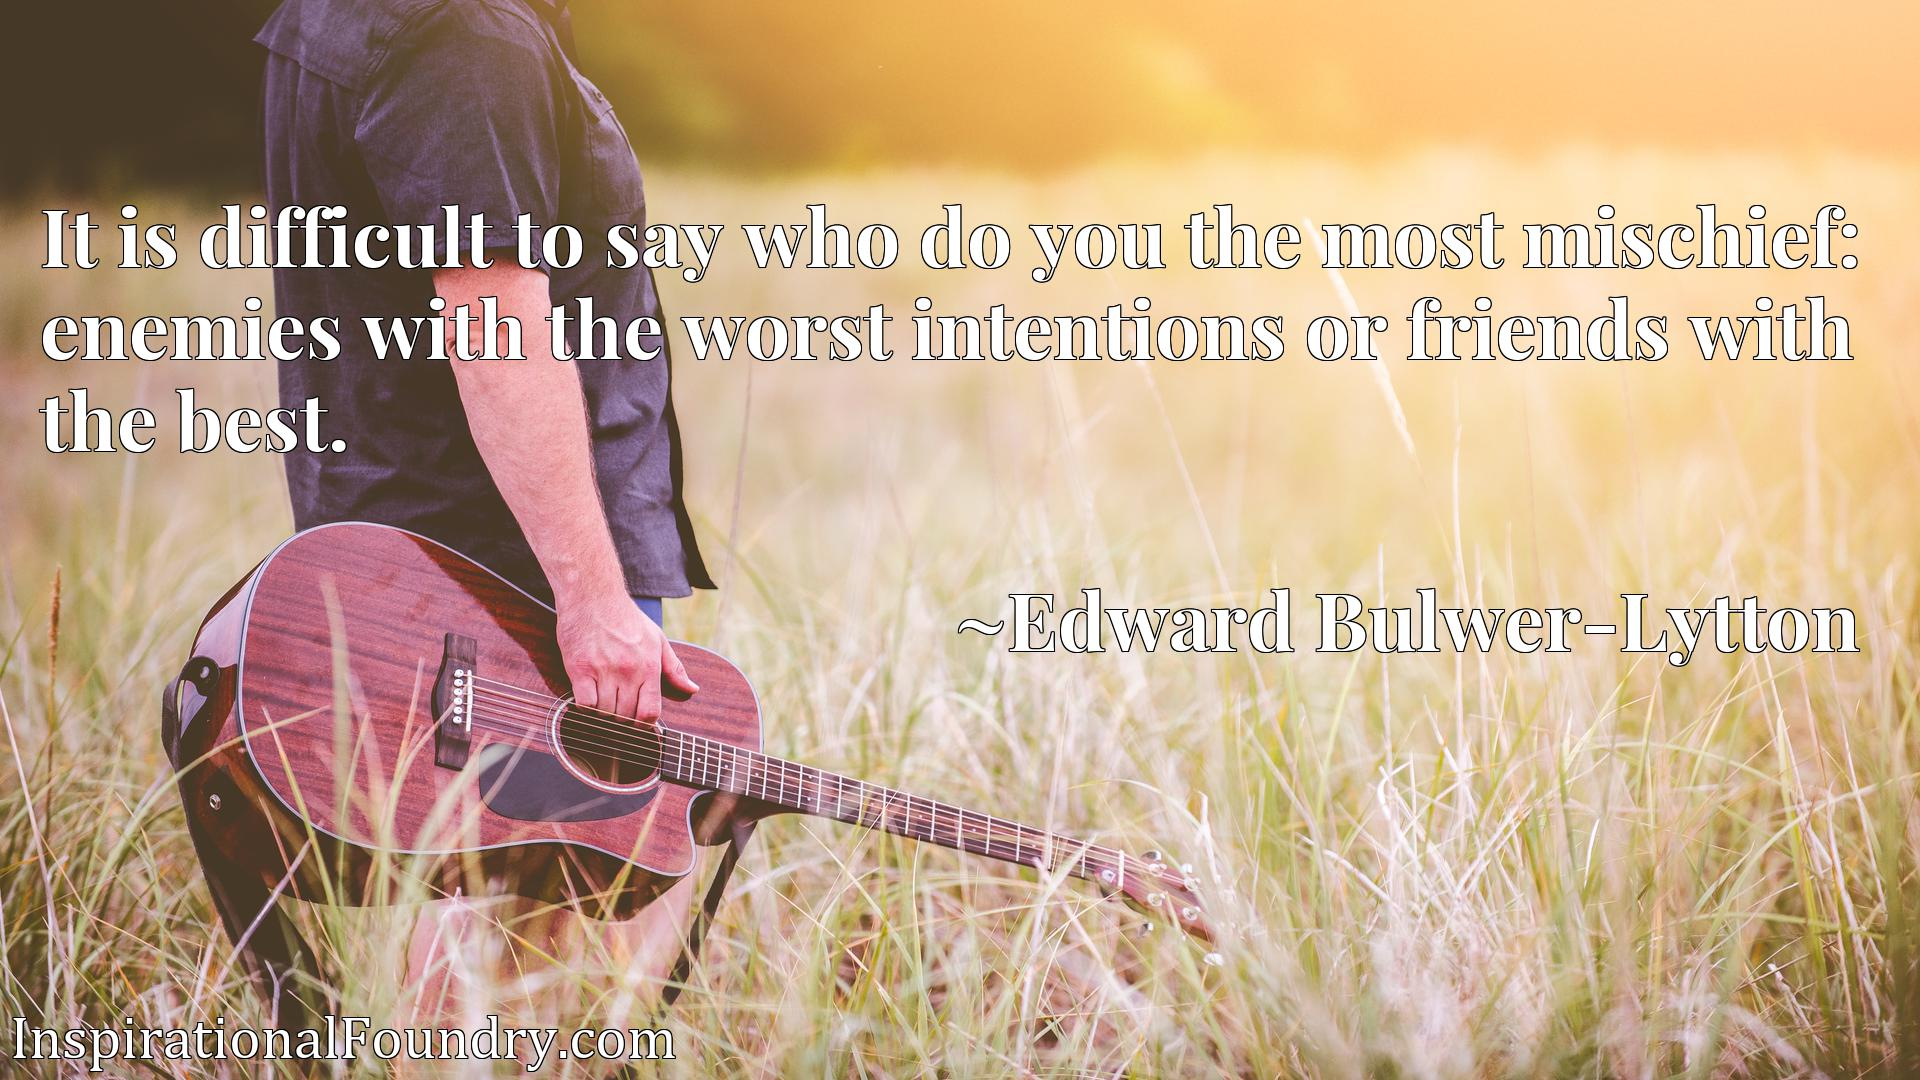 It is difficult to say who do you the most mischief: enemies with the worst intentions or friends with the best.